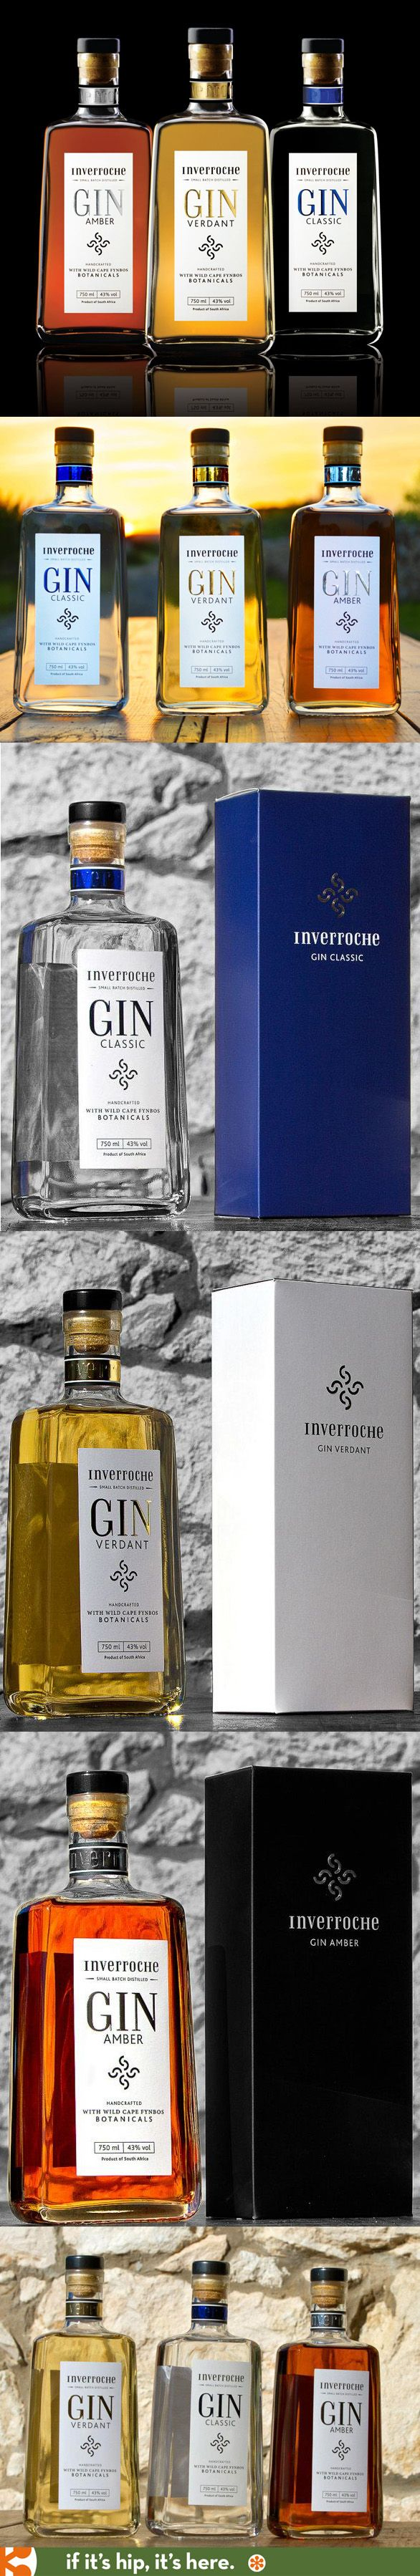 Inverroche Gins from New Zealand. Classic, Amber and Verdant bottles and packaging.